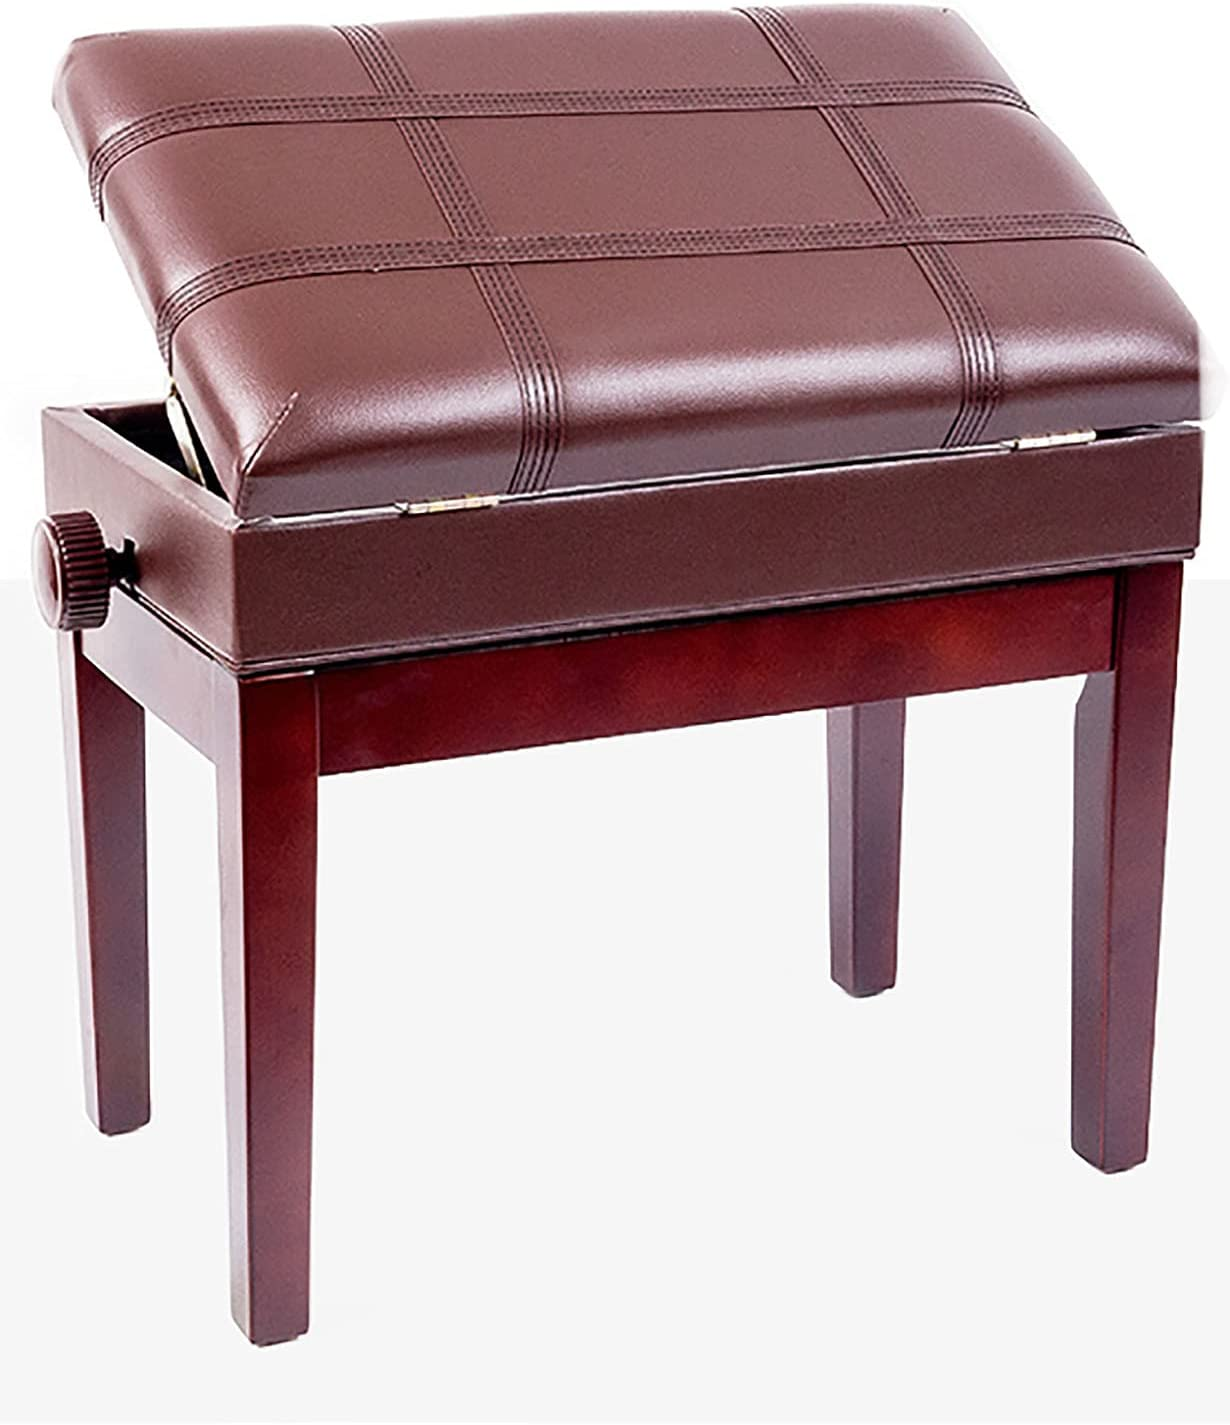 Gprice Piano Bench Stool with Max 68% National uniform free shipping OFF wi Music Storage Solo